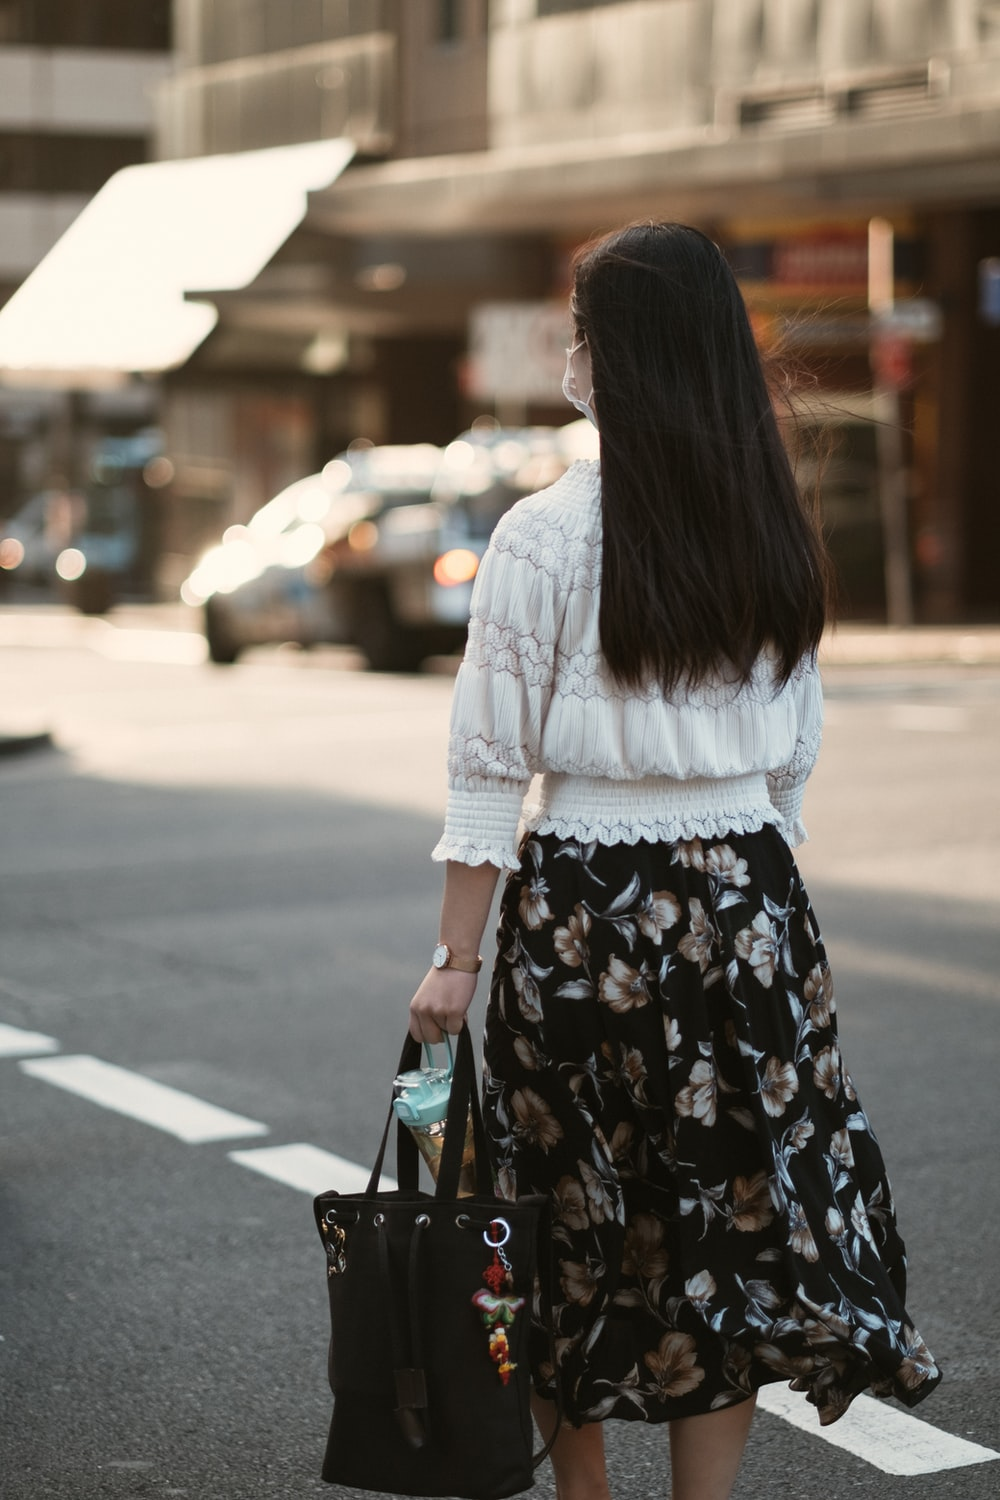 woman in white long sleeve shirt and black floral skirt standing on sidewalk during daytime